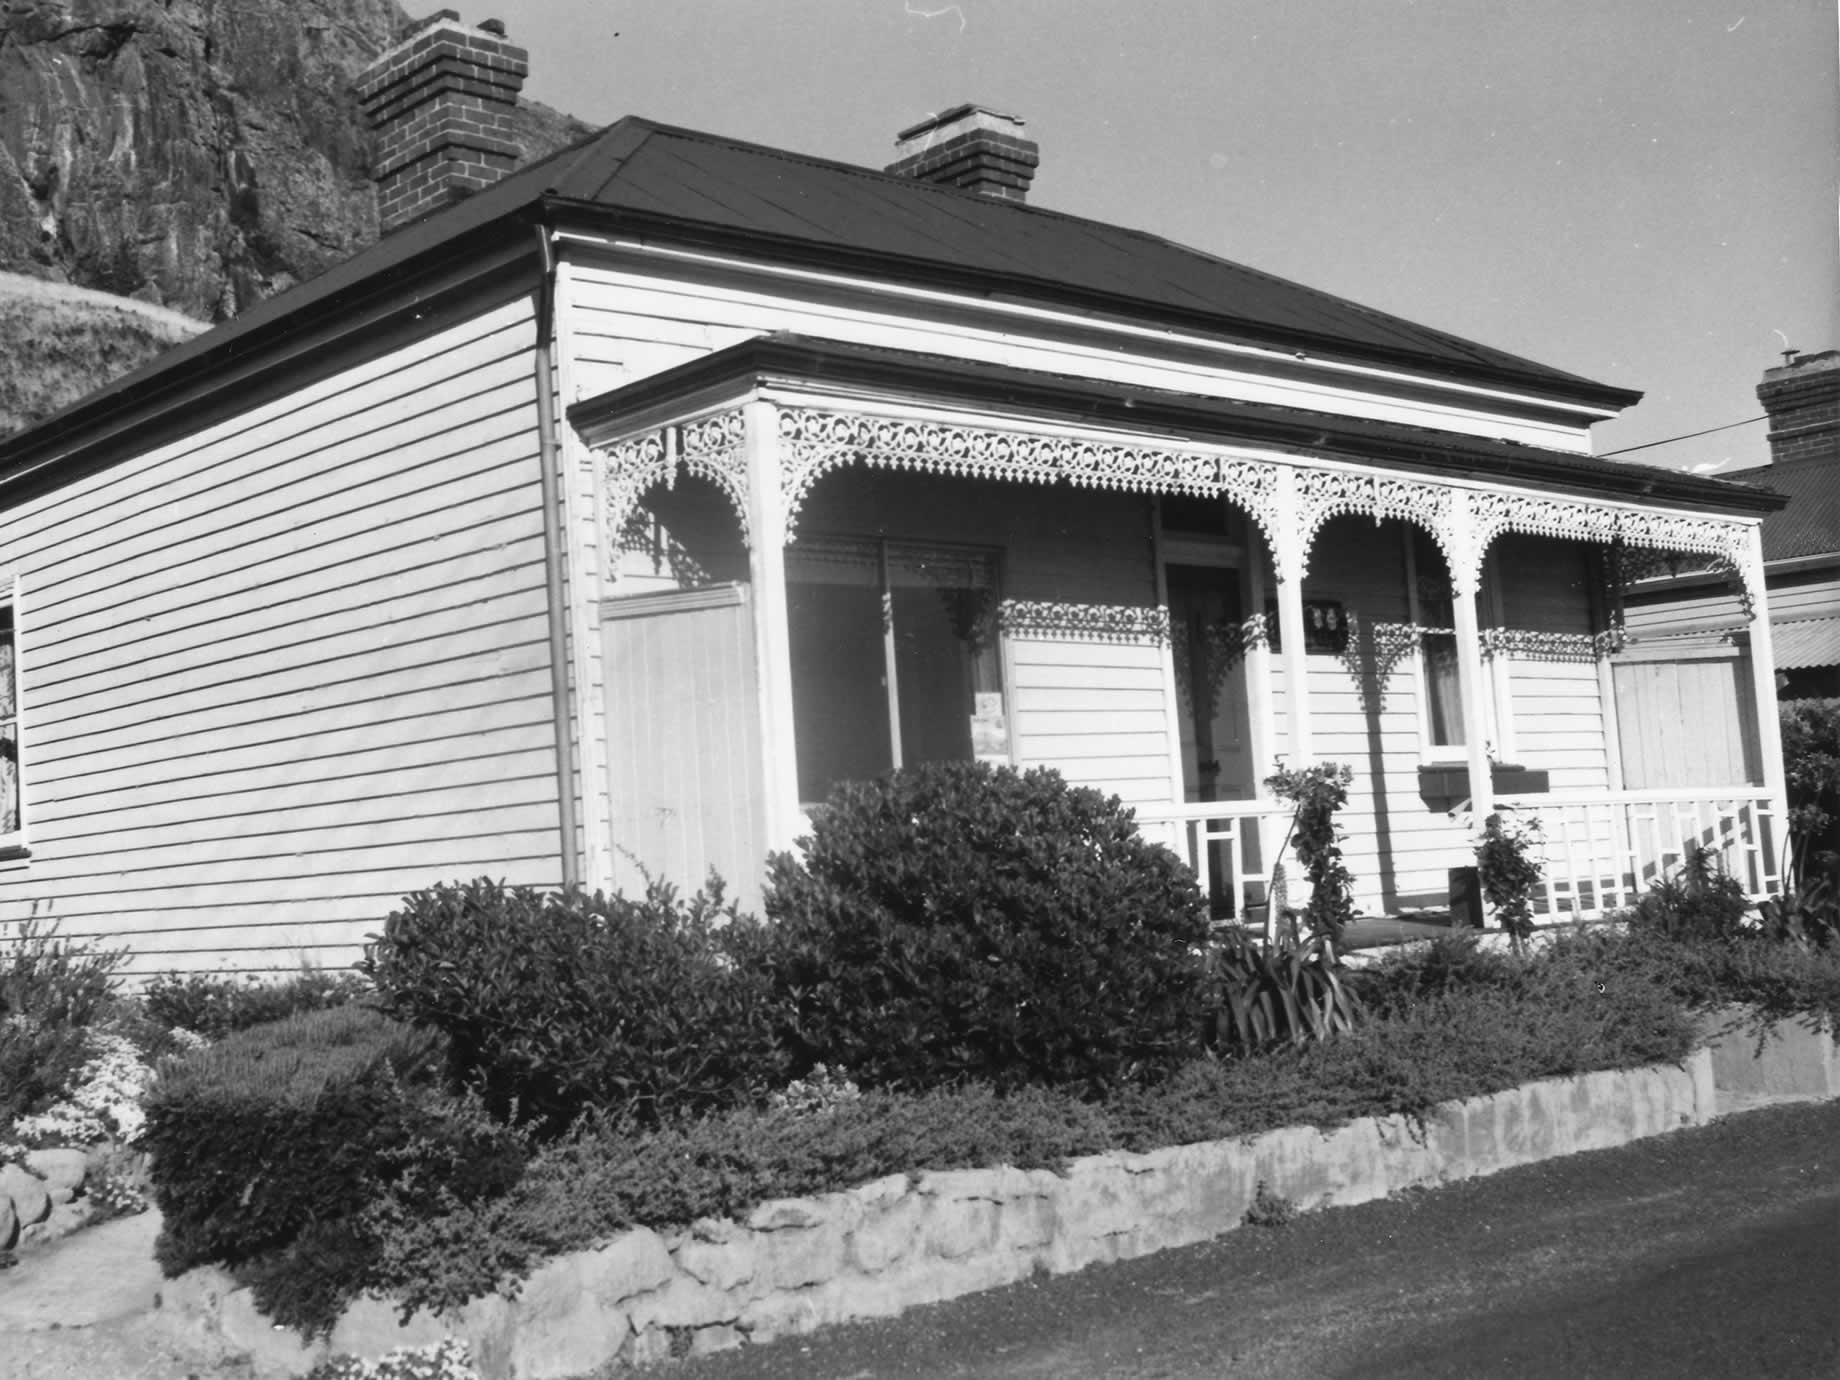 Gull Cottage, 1970, later to become the home of historian Meg Eldridge